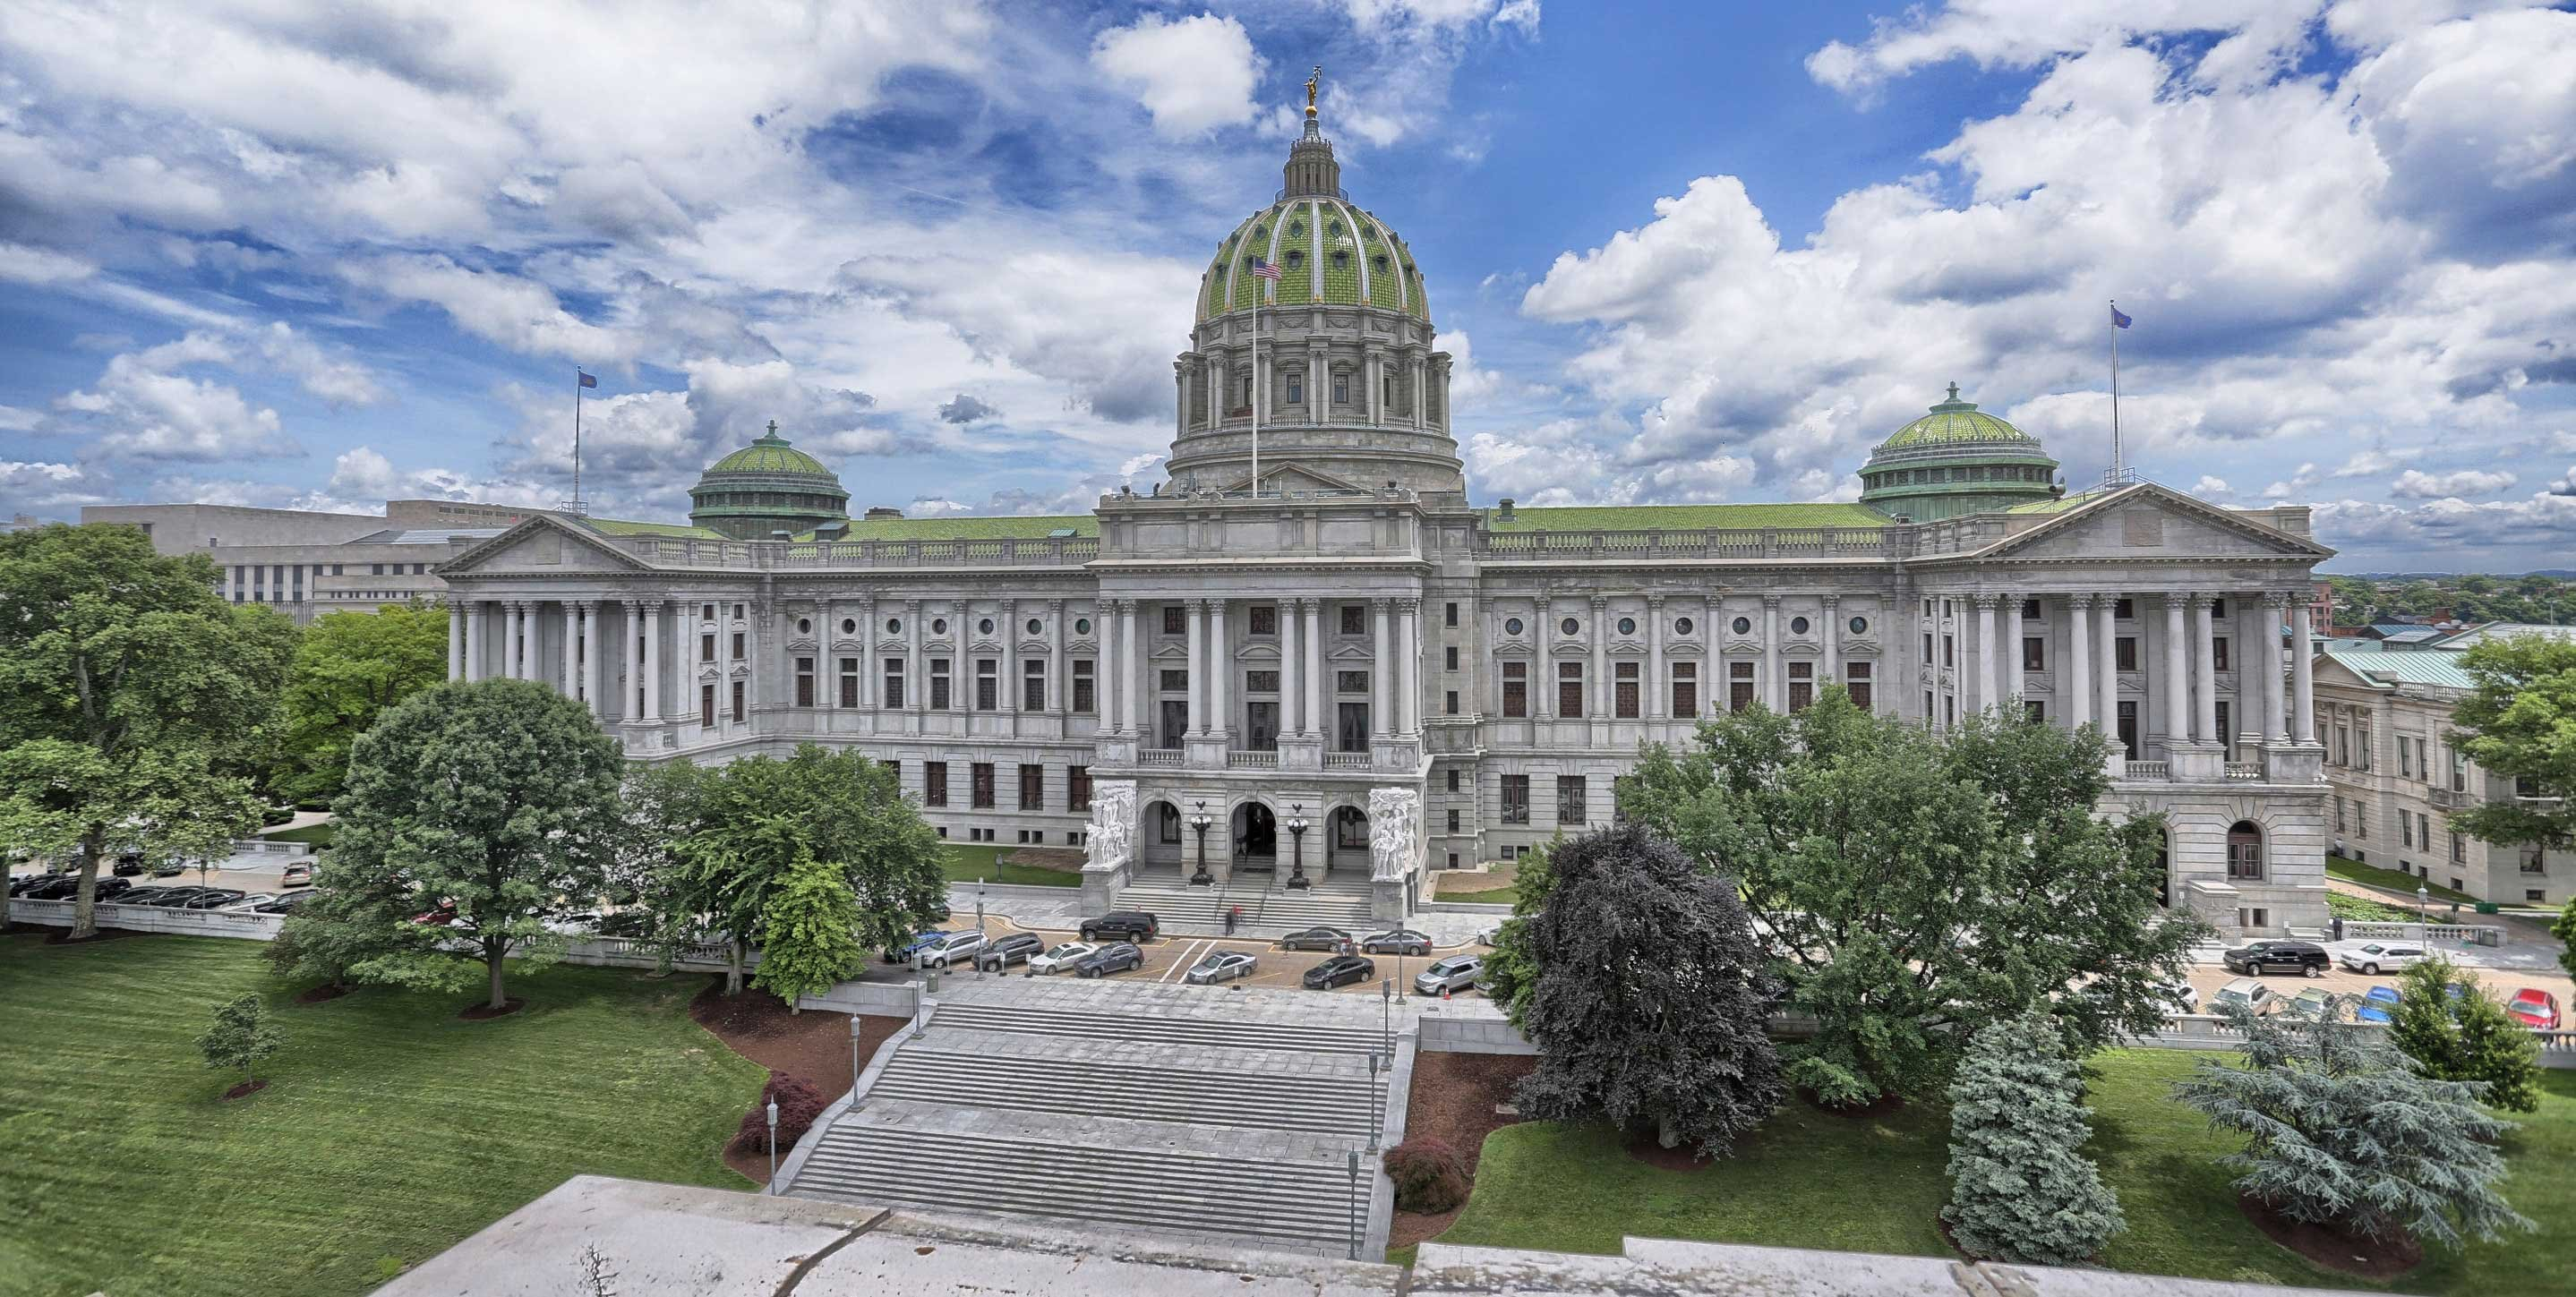 Construction on the Pennsylvania Capitol began in 1902, but it was not dedicated until 1906.